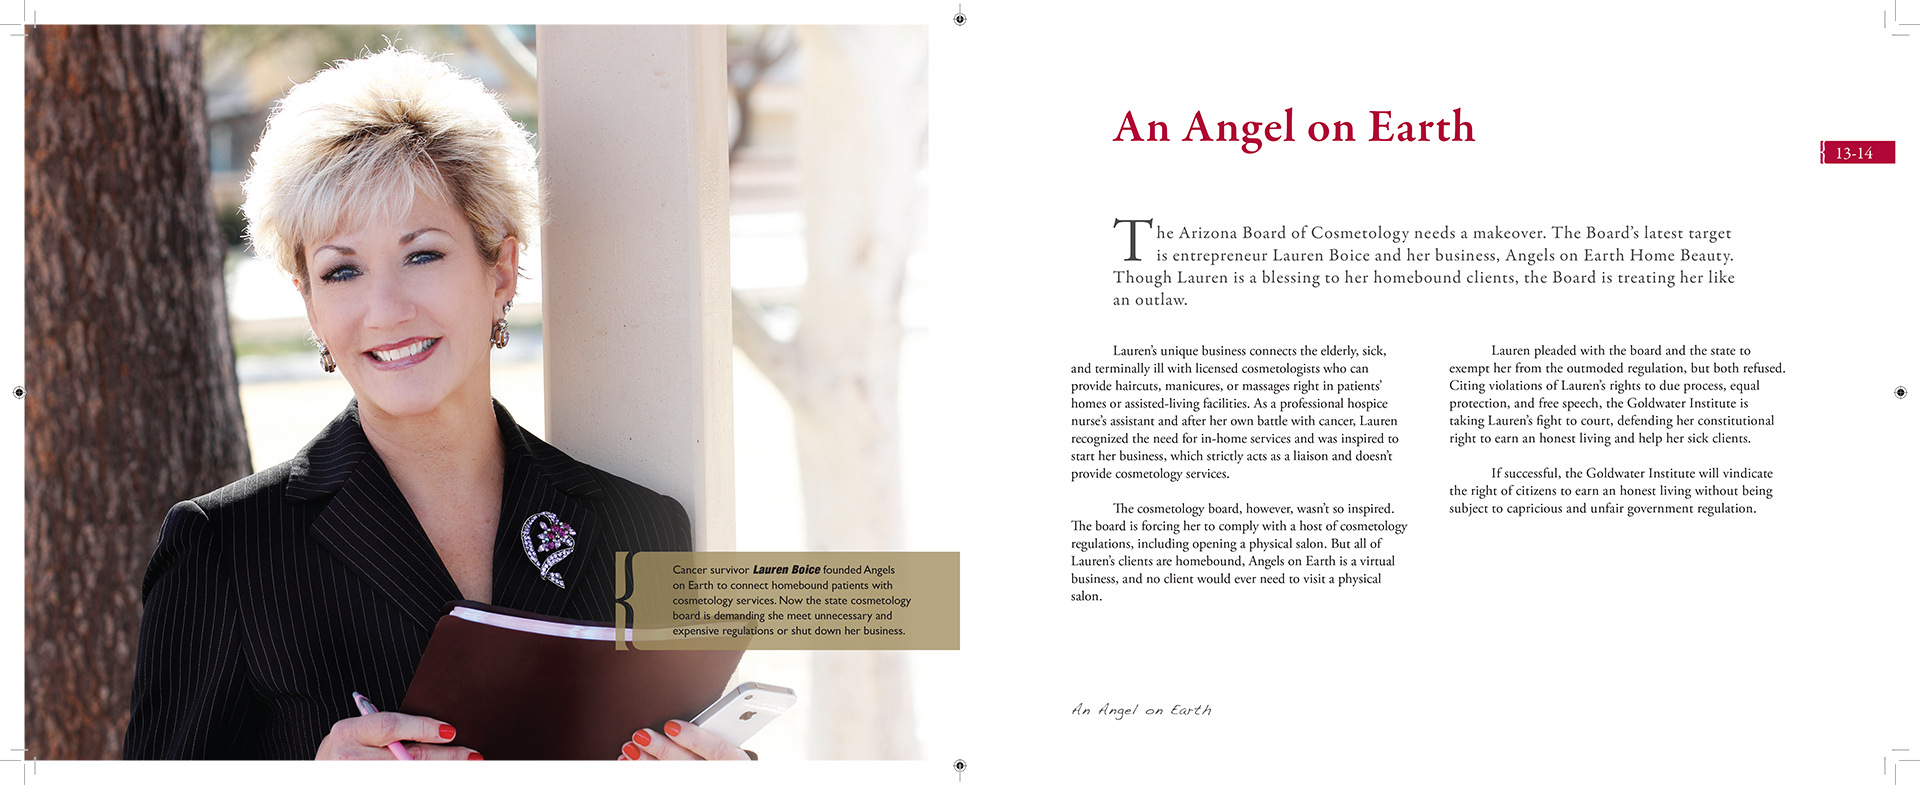 Goldwater Institute Annual Report 2011 - Interior Pages